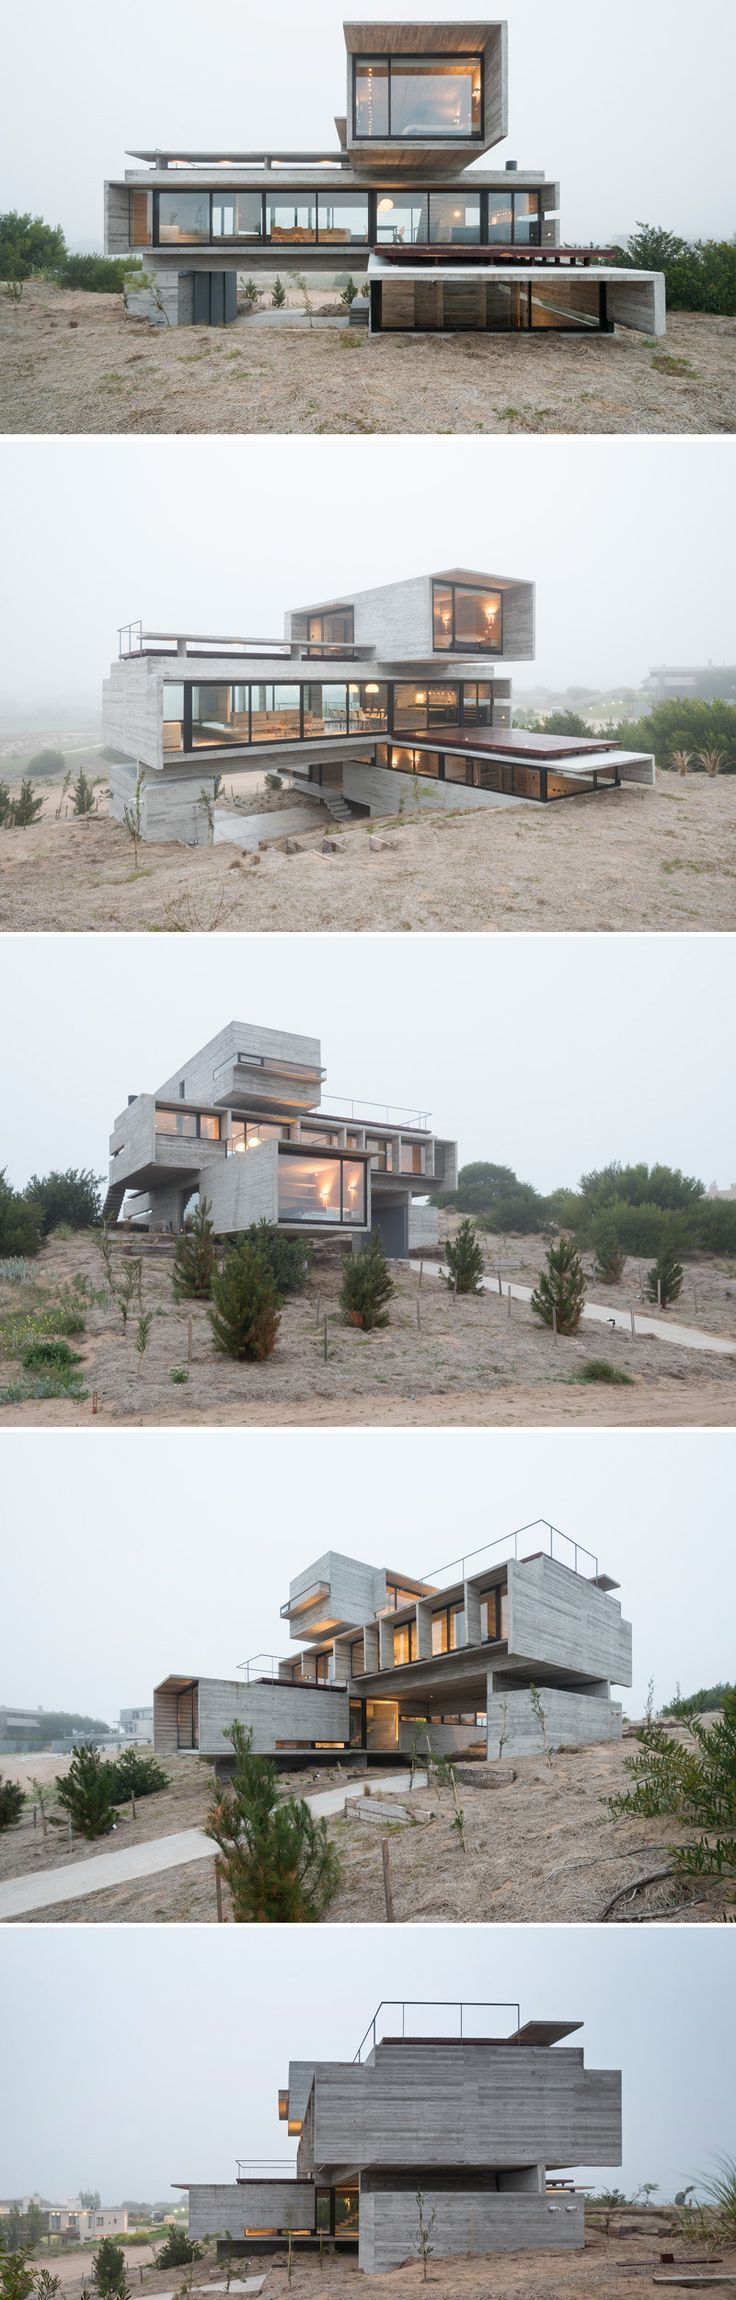 Architect Luciano Kruk designs a house made of three stacked forms of rough unfinished concrete overlooking a golf course in Argentina #containerhome #shippingcontainer